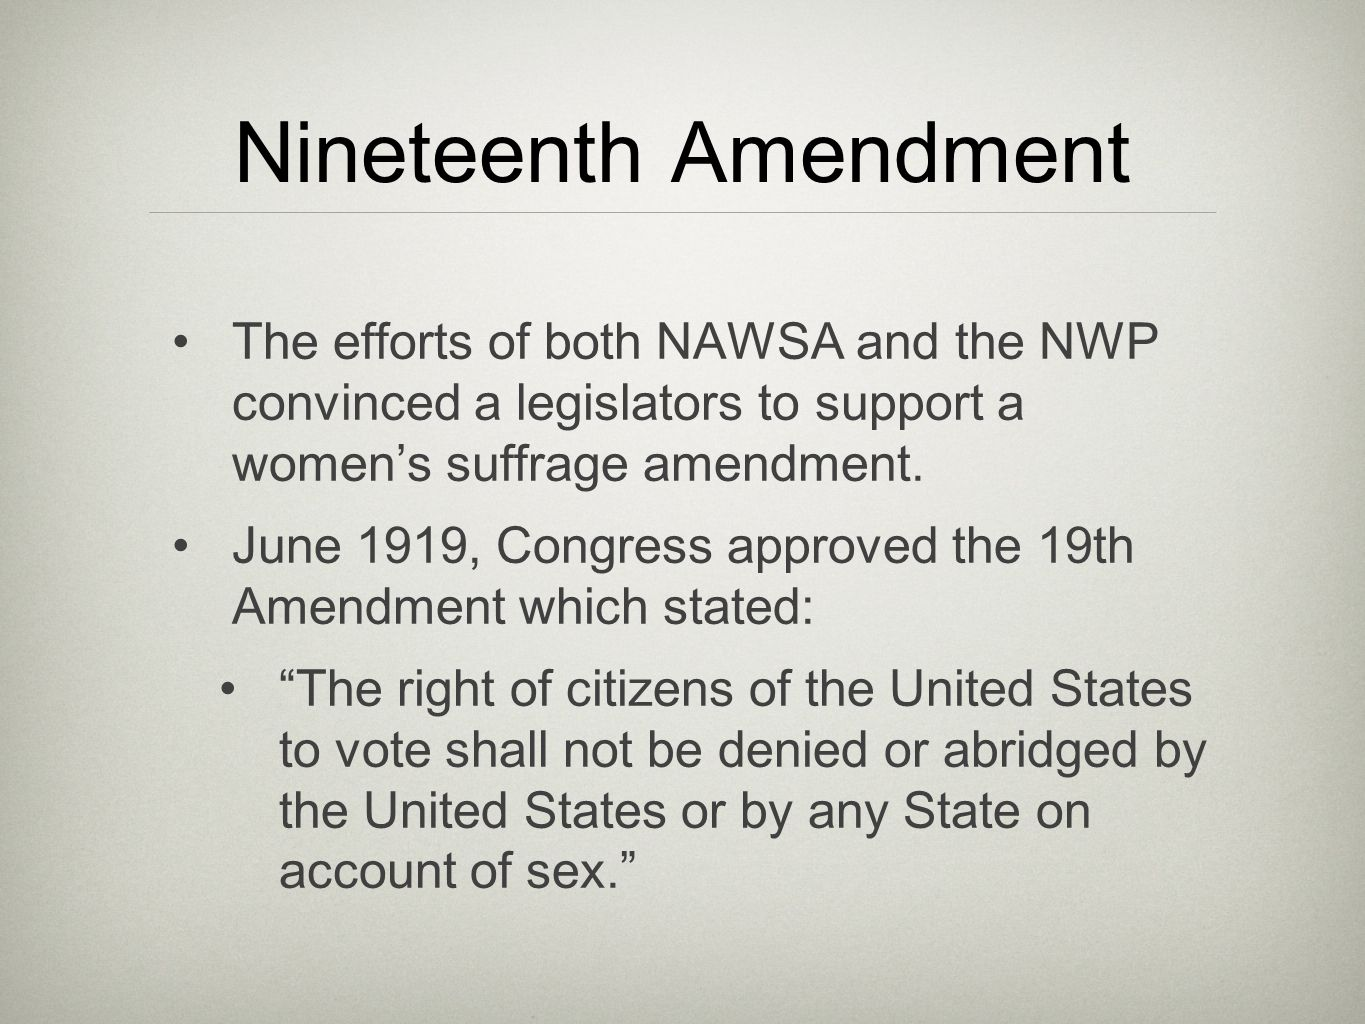 Nineteenth Amendment The efforts of both NAWSA and the NWP convinced a legislators to support a women's suffrage amendment.